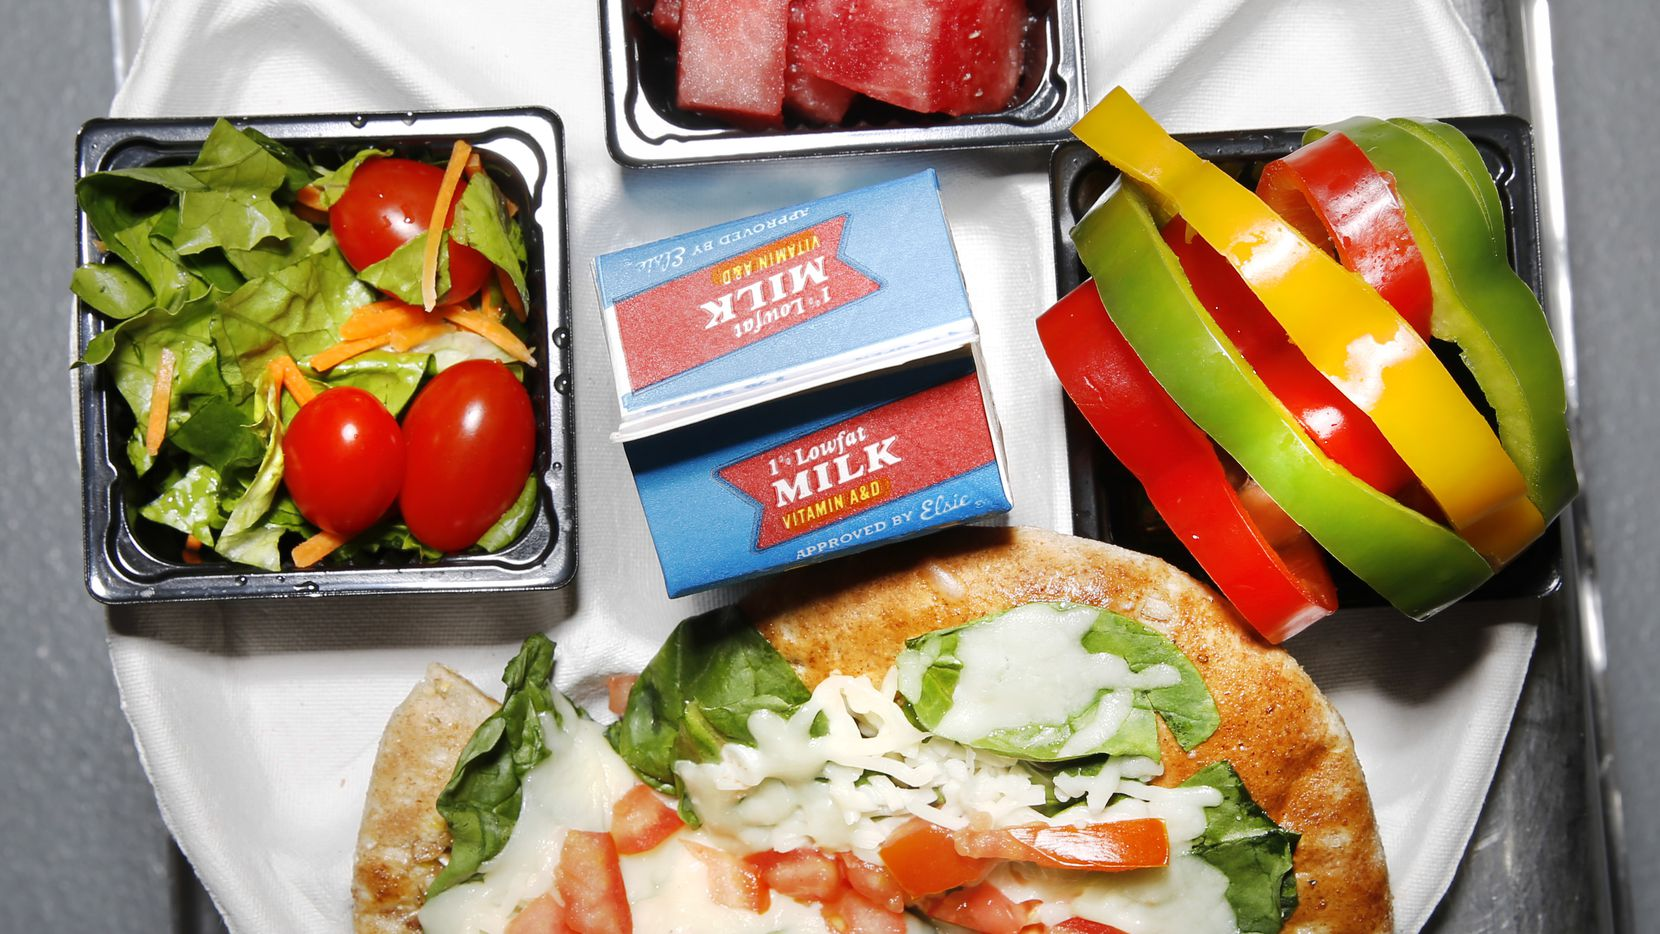 Restaurant critic Leslie Brenner went to Dallas Independent School District's production facility last year to taste test healthy 'Smart Box' lunches.  One was this Mediterranean Combo Meal with spinach-cheese flatbread and Texas watermelon.